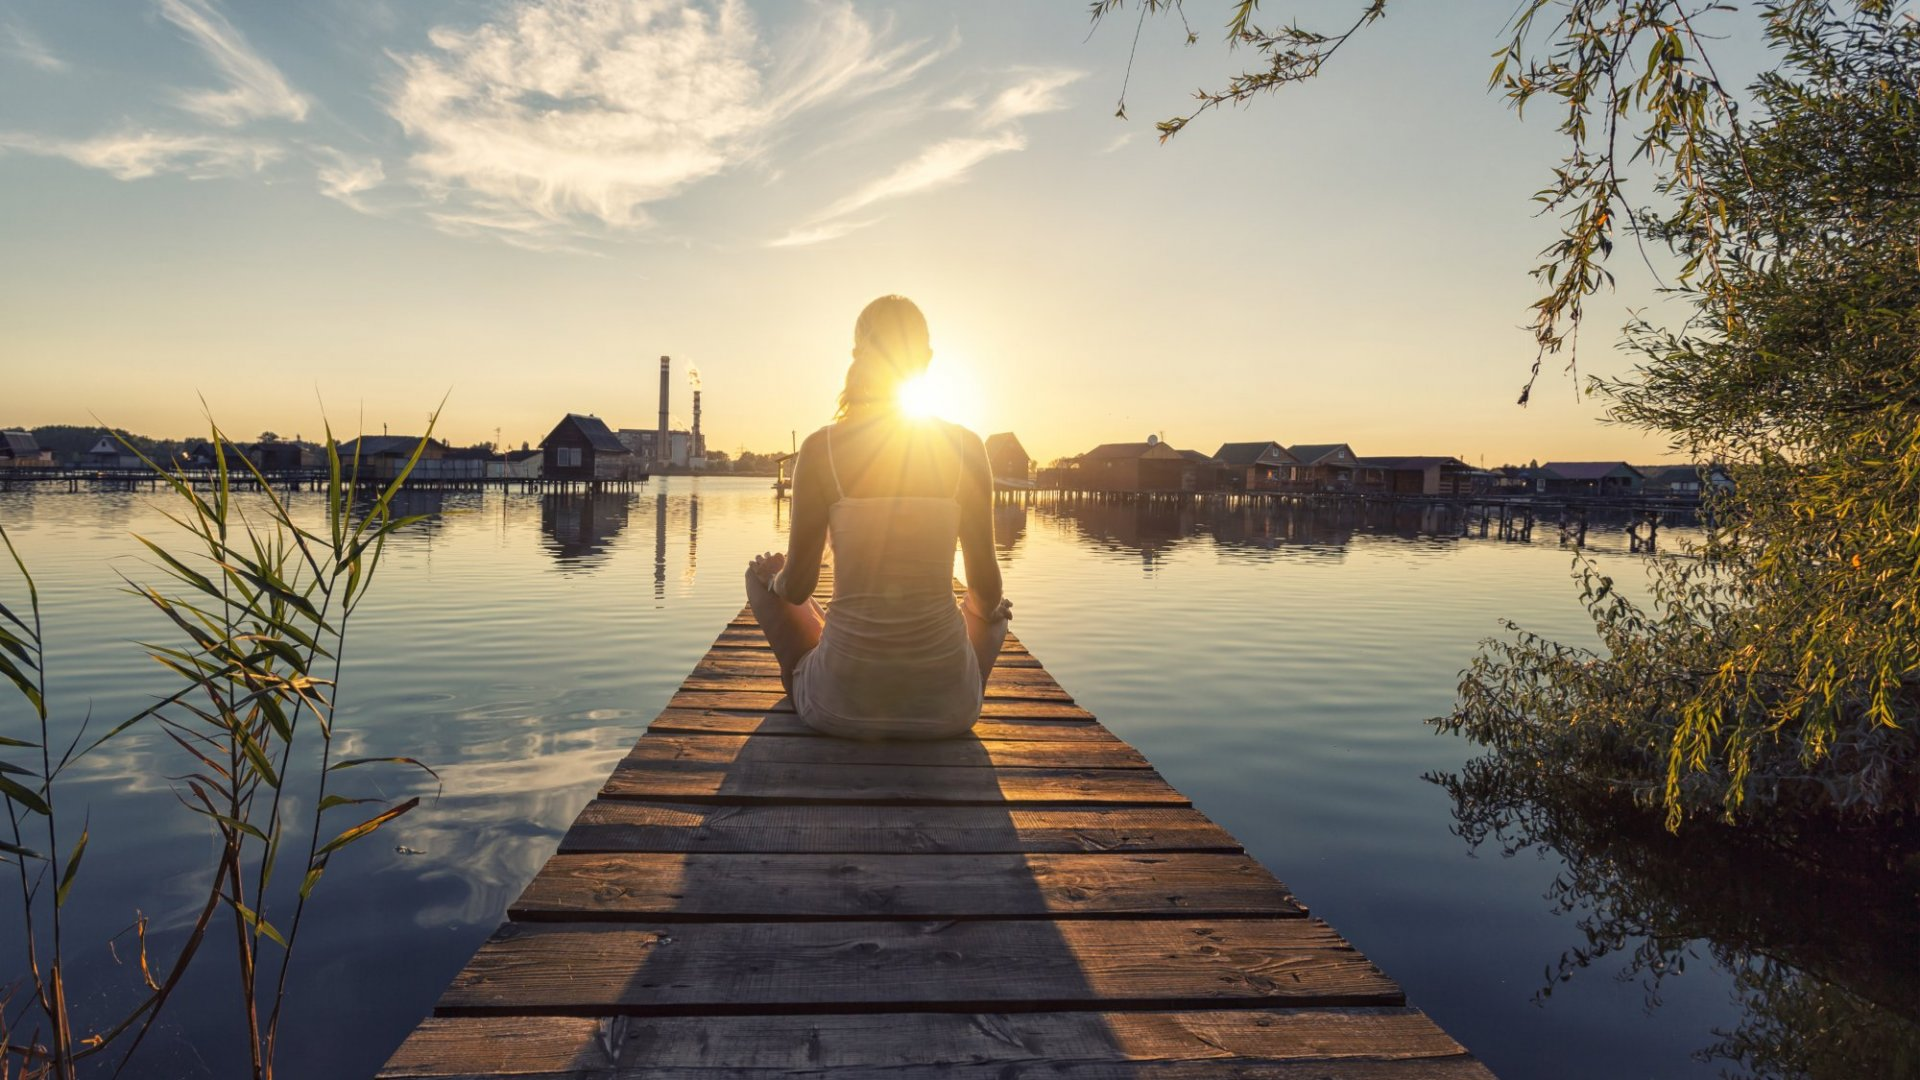 Perfectionism Actually Holds You Back. Here Are 8 Ways To Let Go